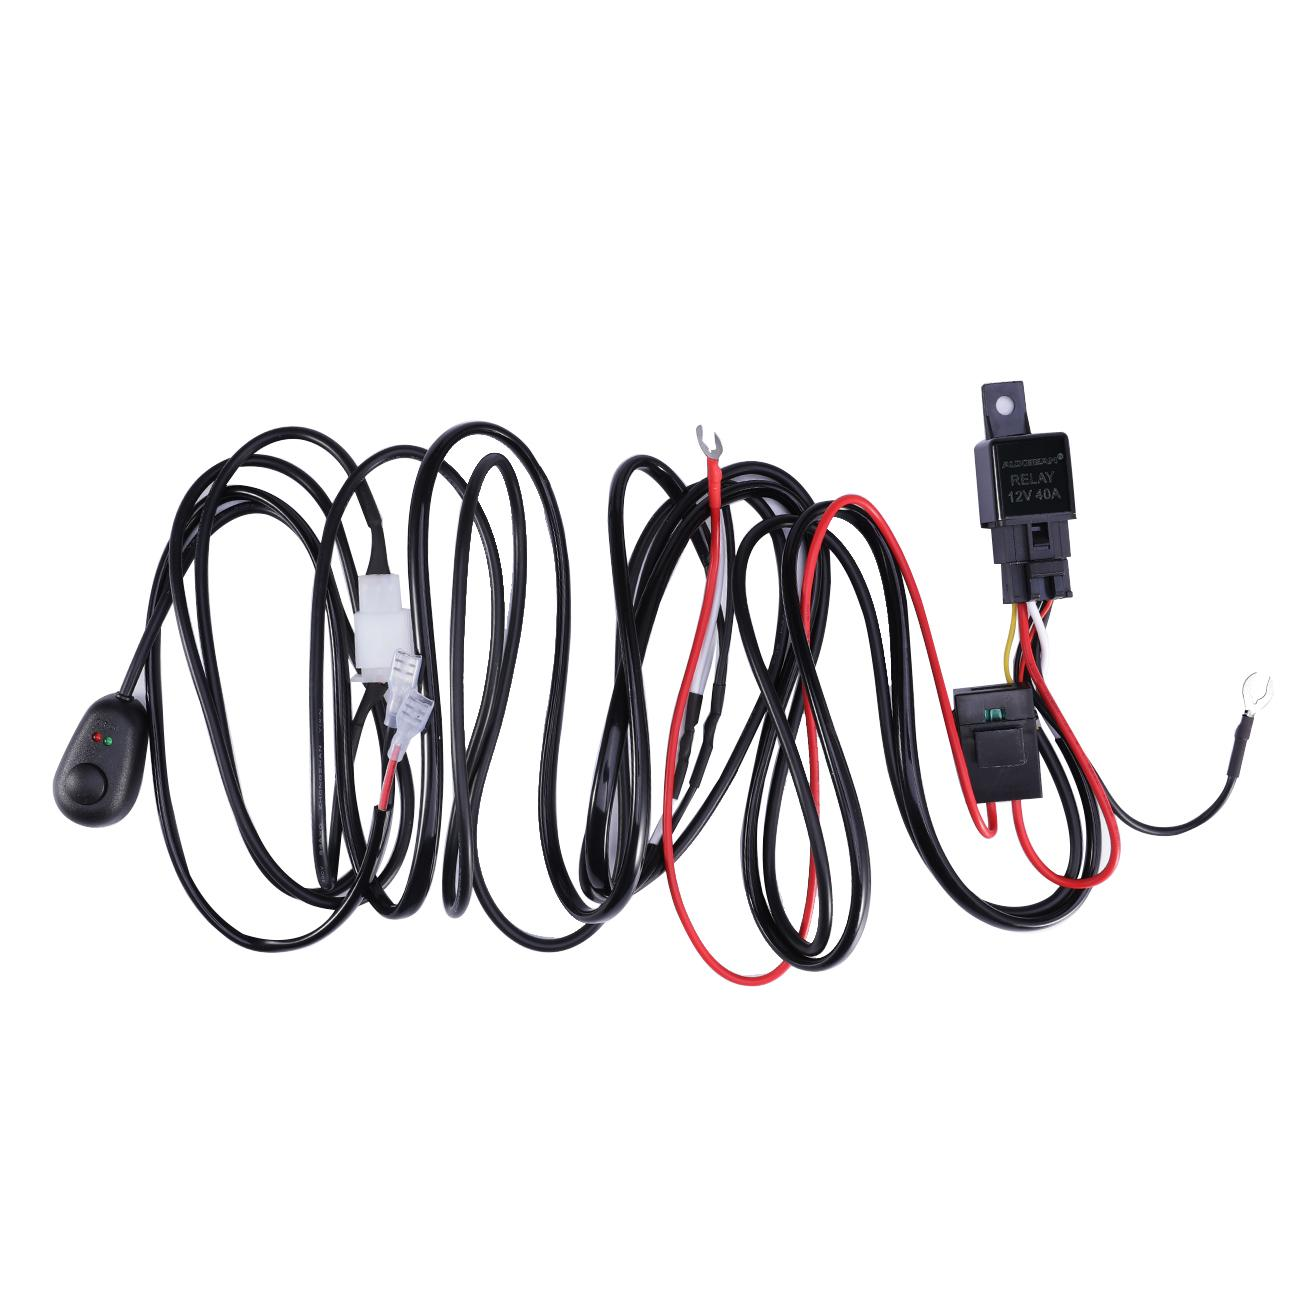 Hid Led Wiring Kit Loom Harness Spot Driving Work Light